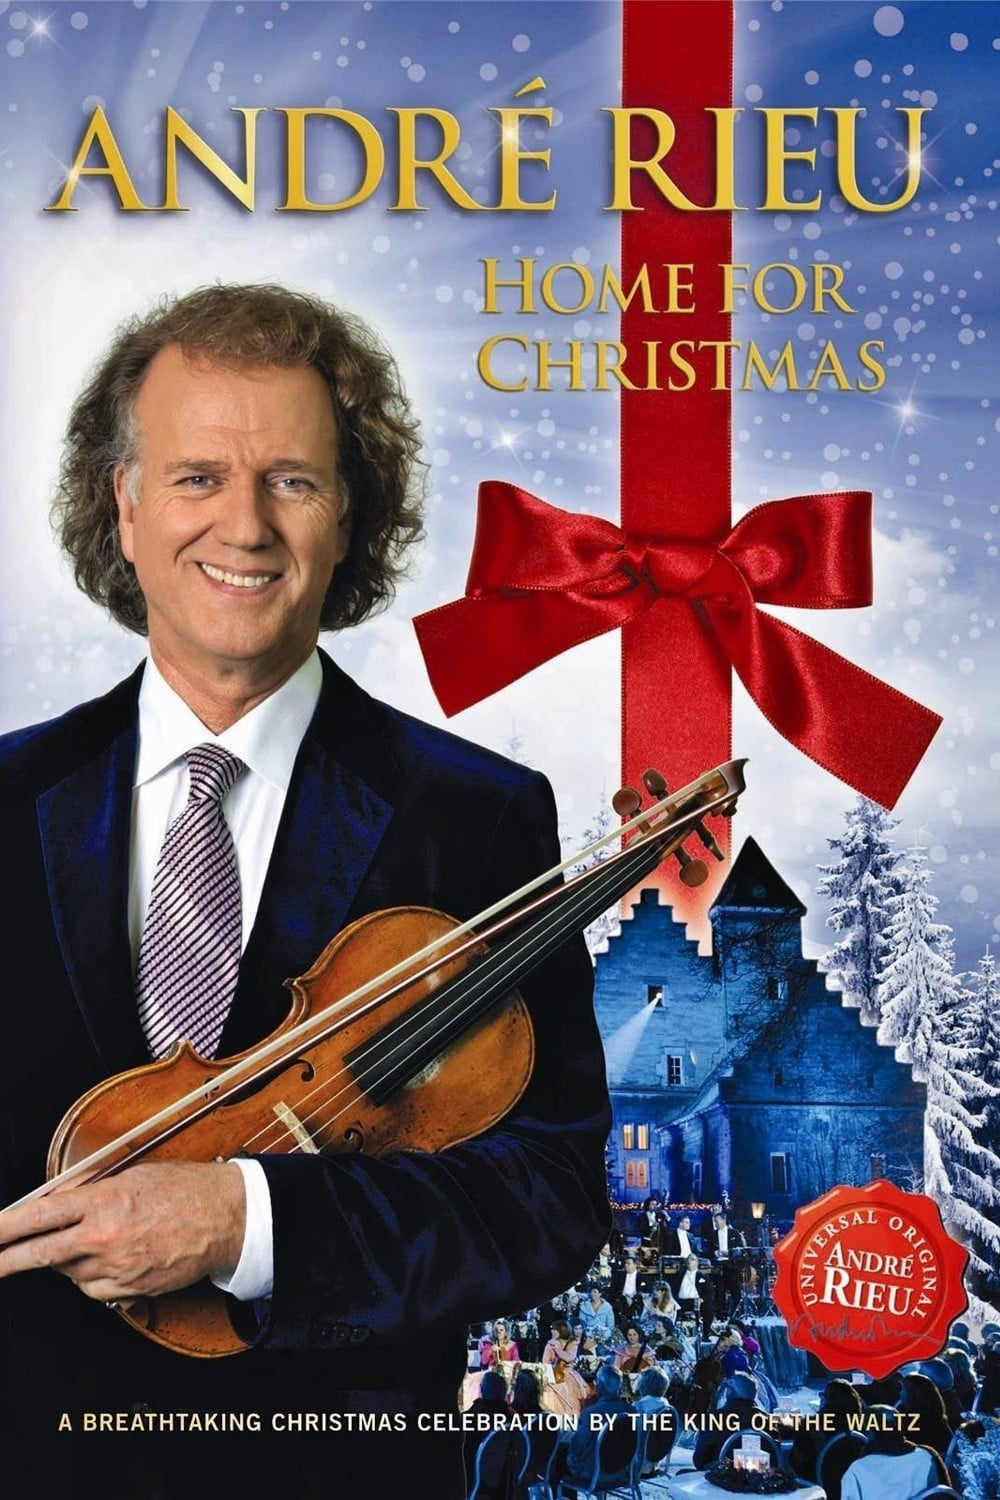 André Rieu - Home for Christmas (2012)